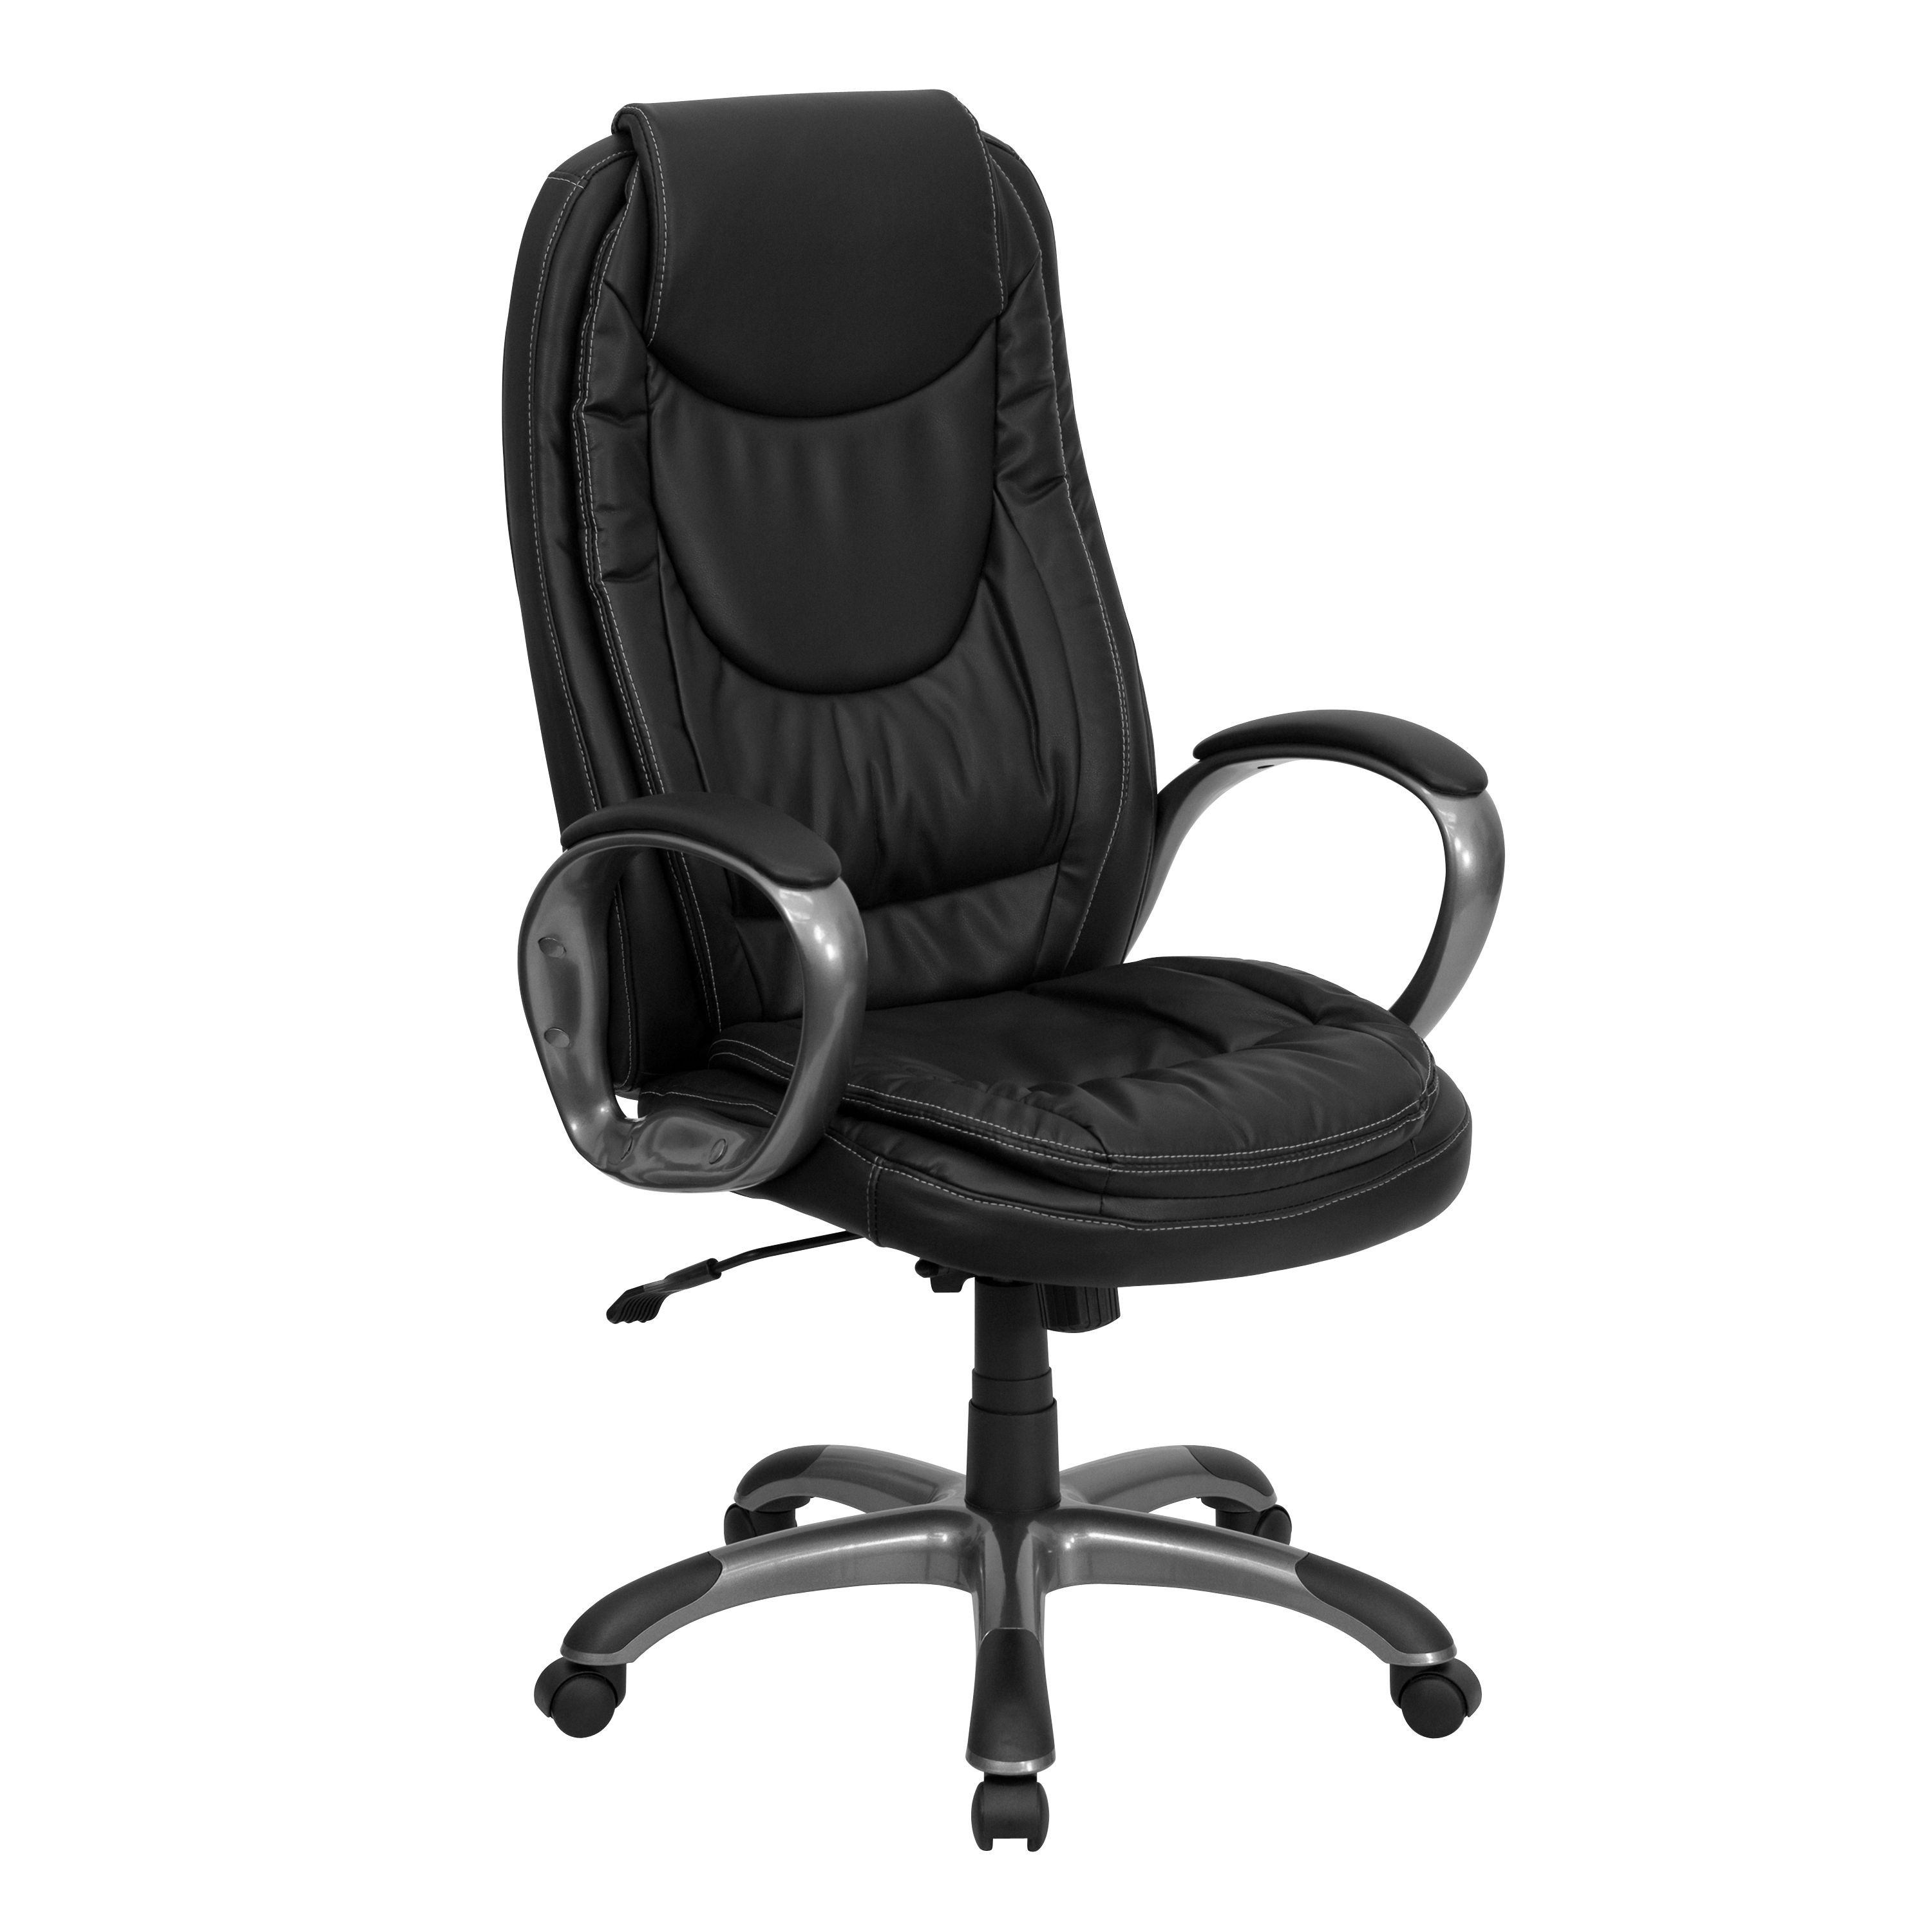 Flash Furniture CH-CX0068H04-GG High-back Black Leather Executive Office Chair, Arm Rests